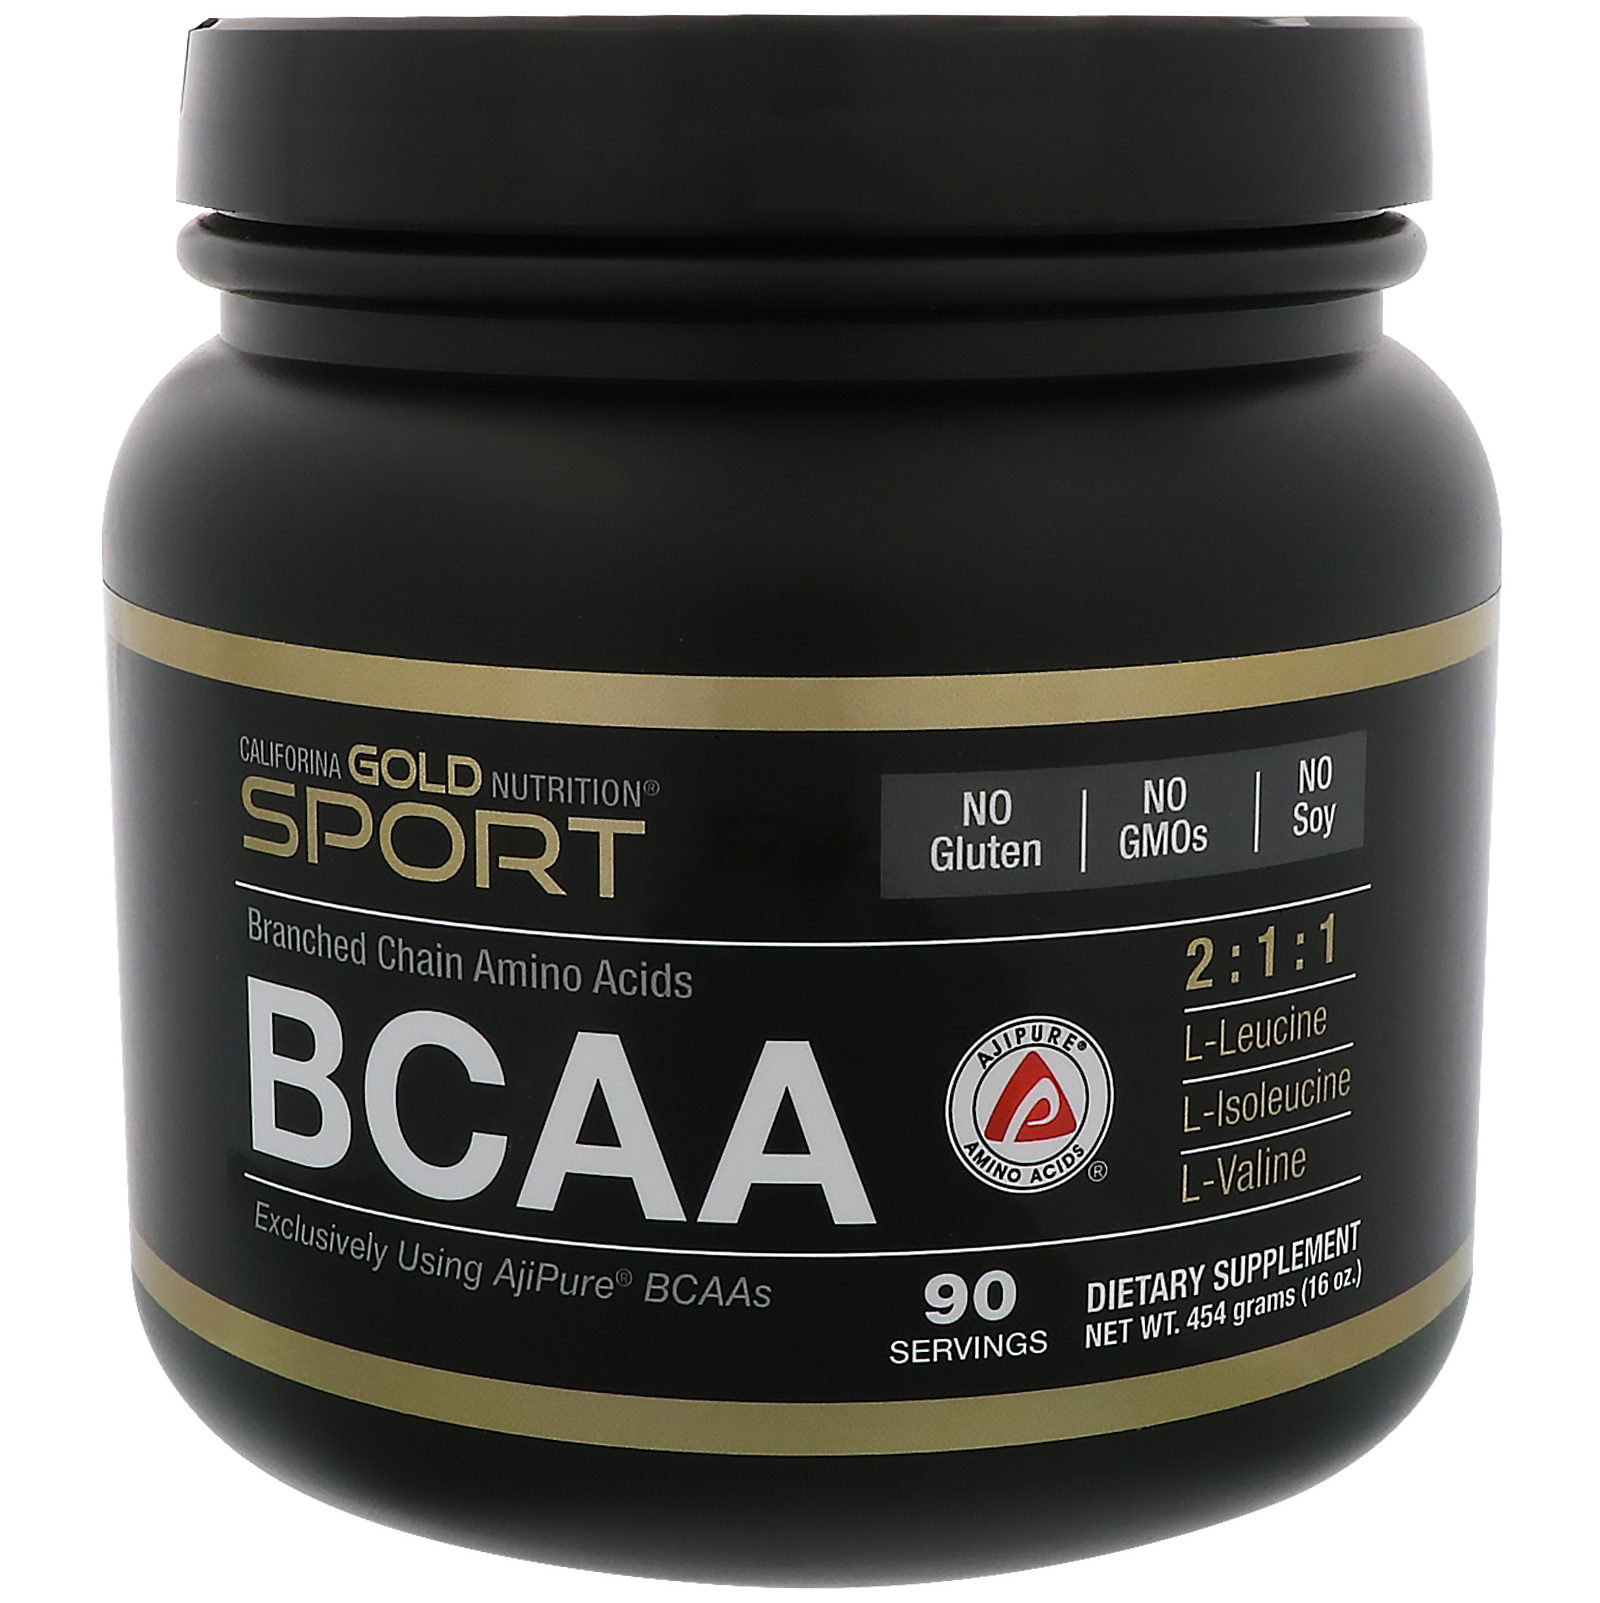 California Gold Nutrition, BCAA, AjiPure® Branched Chain Amino Acids